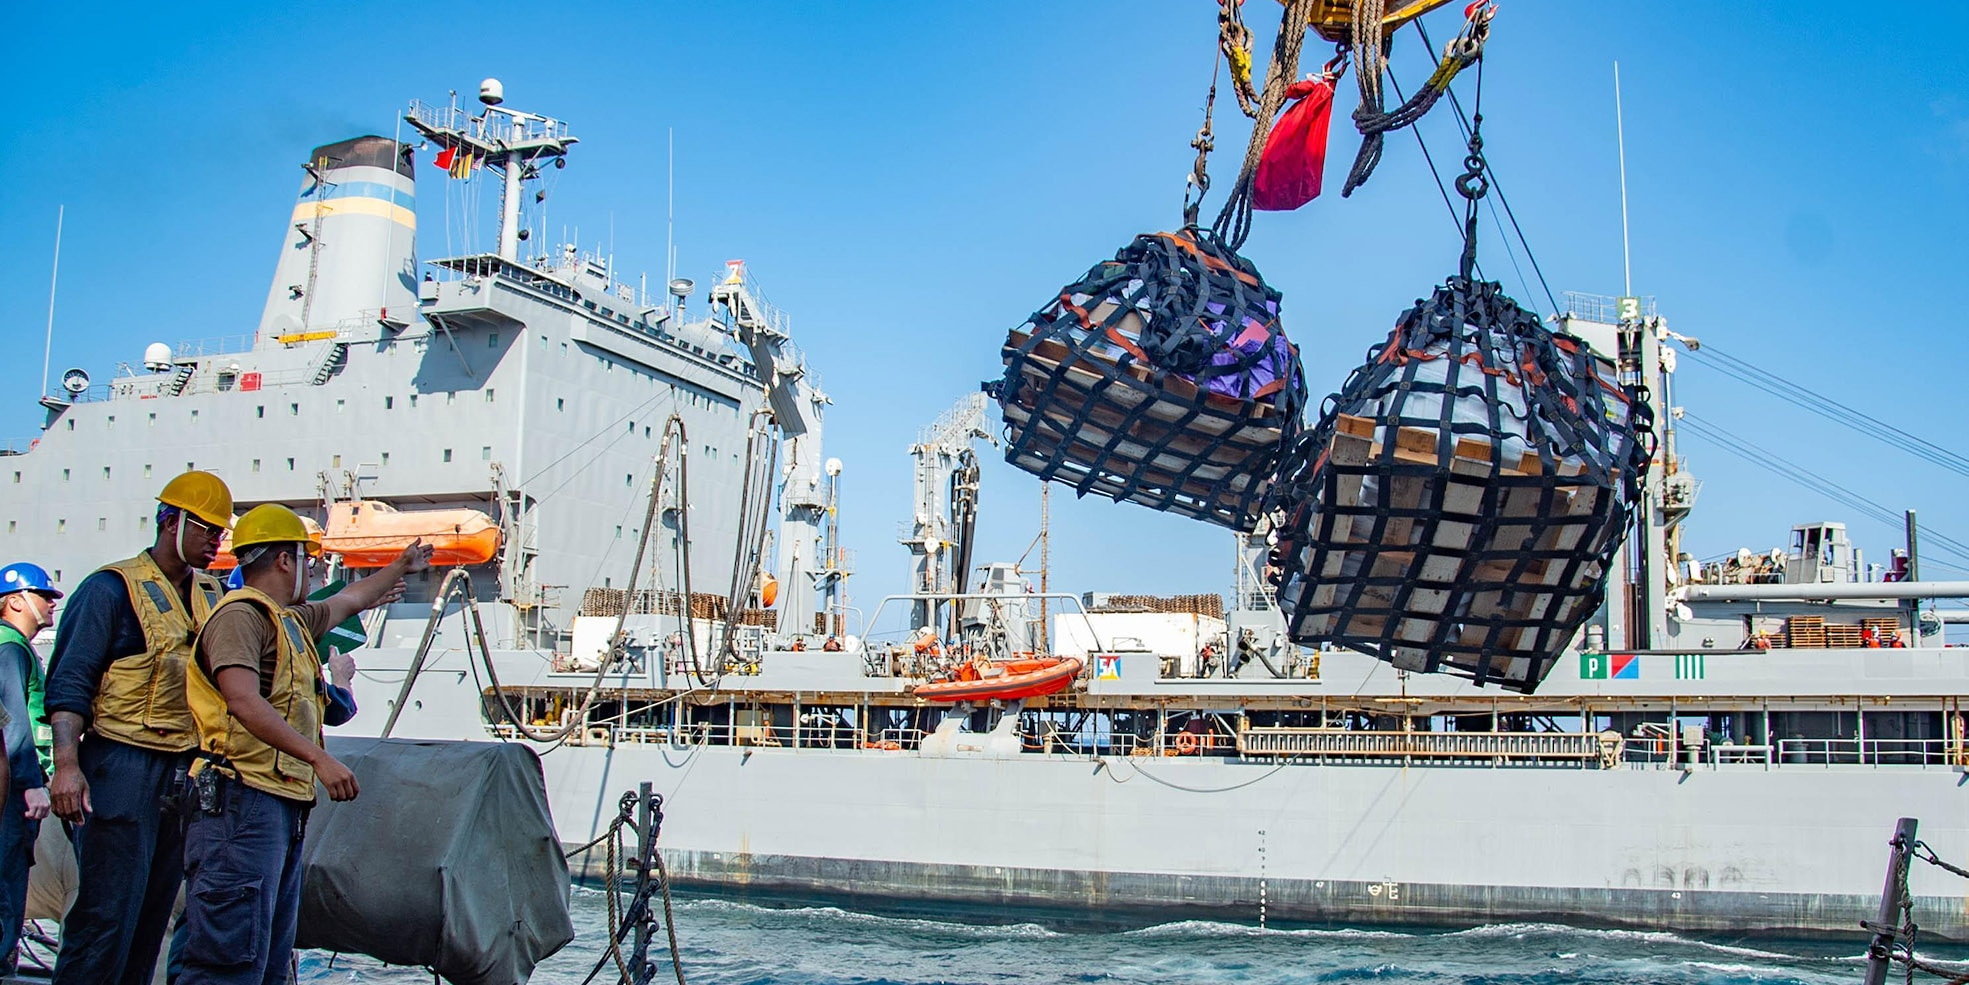 Sailors aboard the guided-missile destroyer USS Winston S. Churchill (DDG 81) send pallets to the fleet replenishment oiler USNS Leroy Grumman (T-AO 195) during a replenishment-at-sea in the Arabian Sea, Jan. 19, 2021.